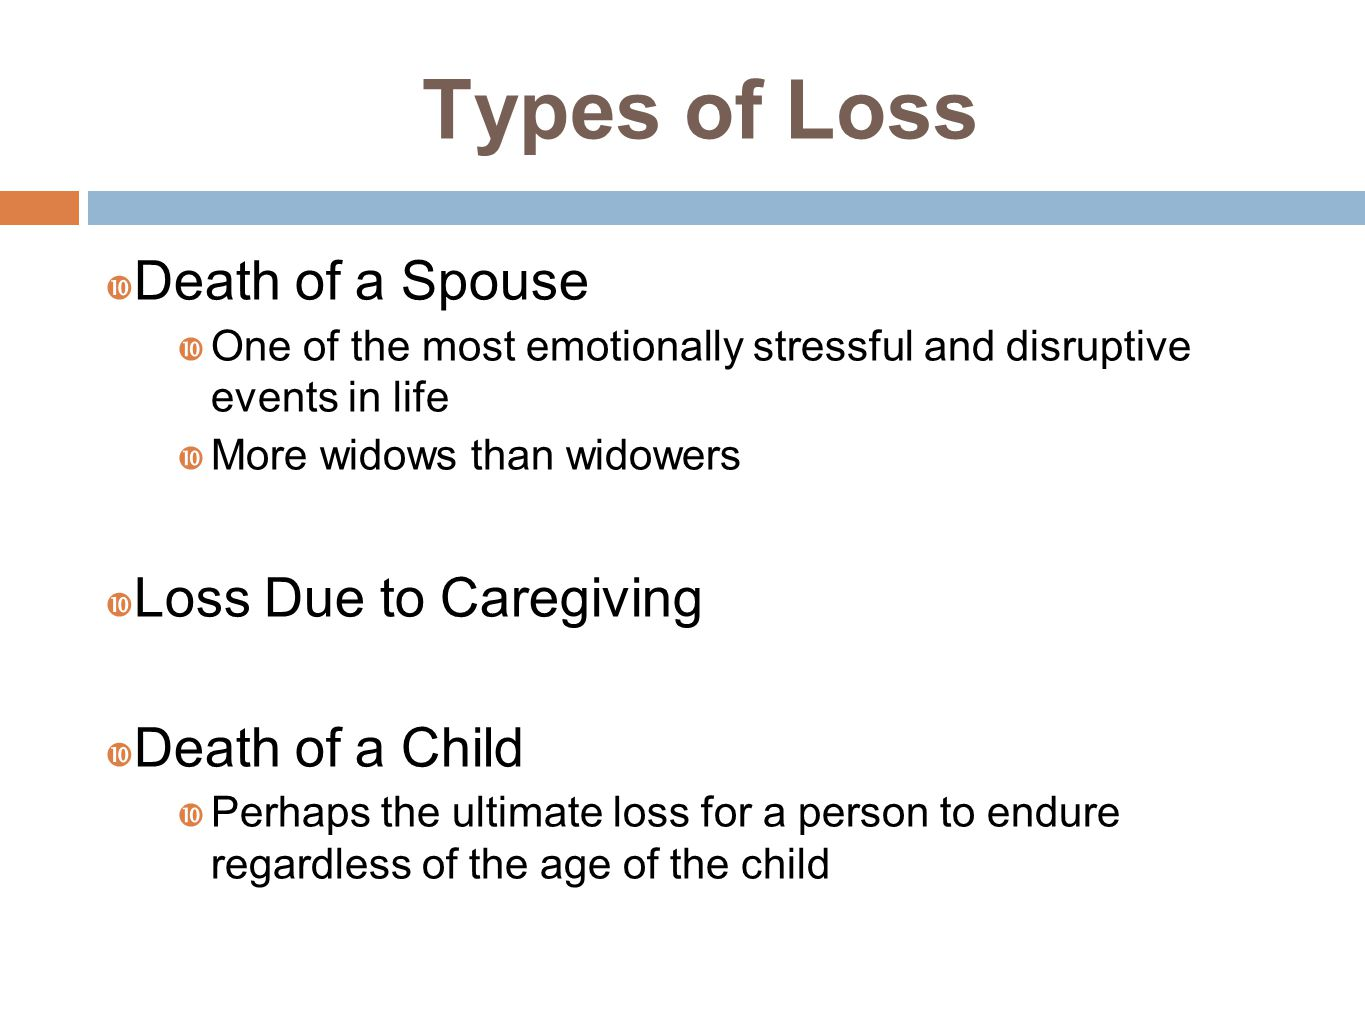 Types of Loss  Death of a Spouse  One of the most emotionally stressful and disruptive events in life  More widows than widowers  Loss Due to Caregiving  Death of a Child  Perhaps the ultimate loss for a person to endure regardless of the age of the child